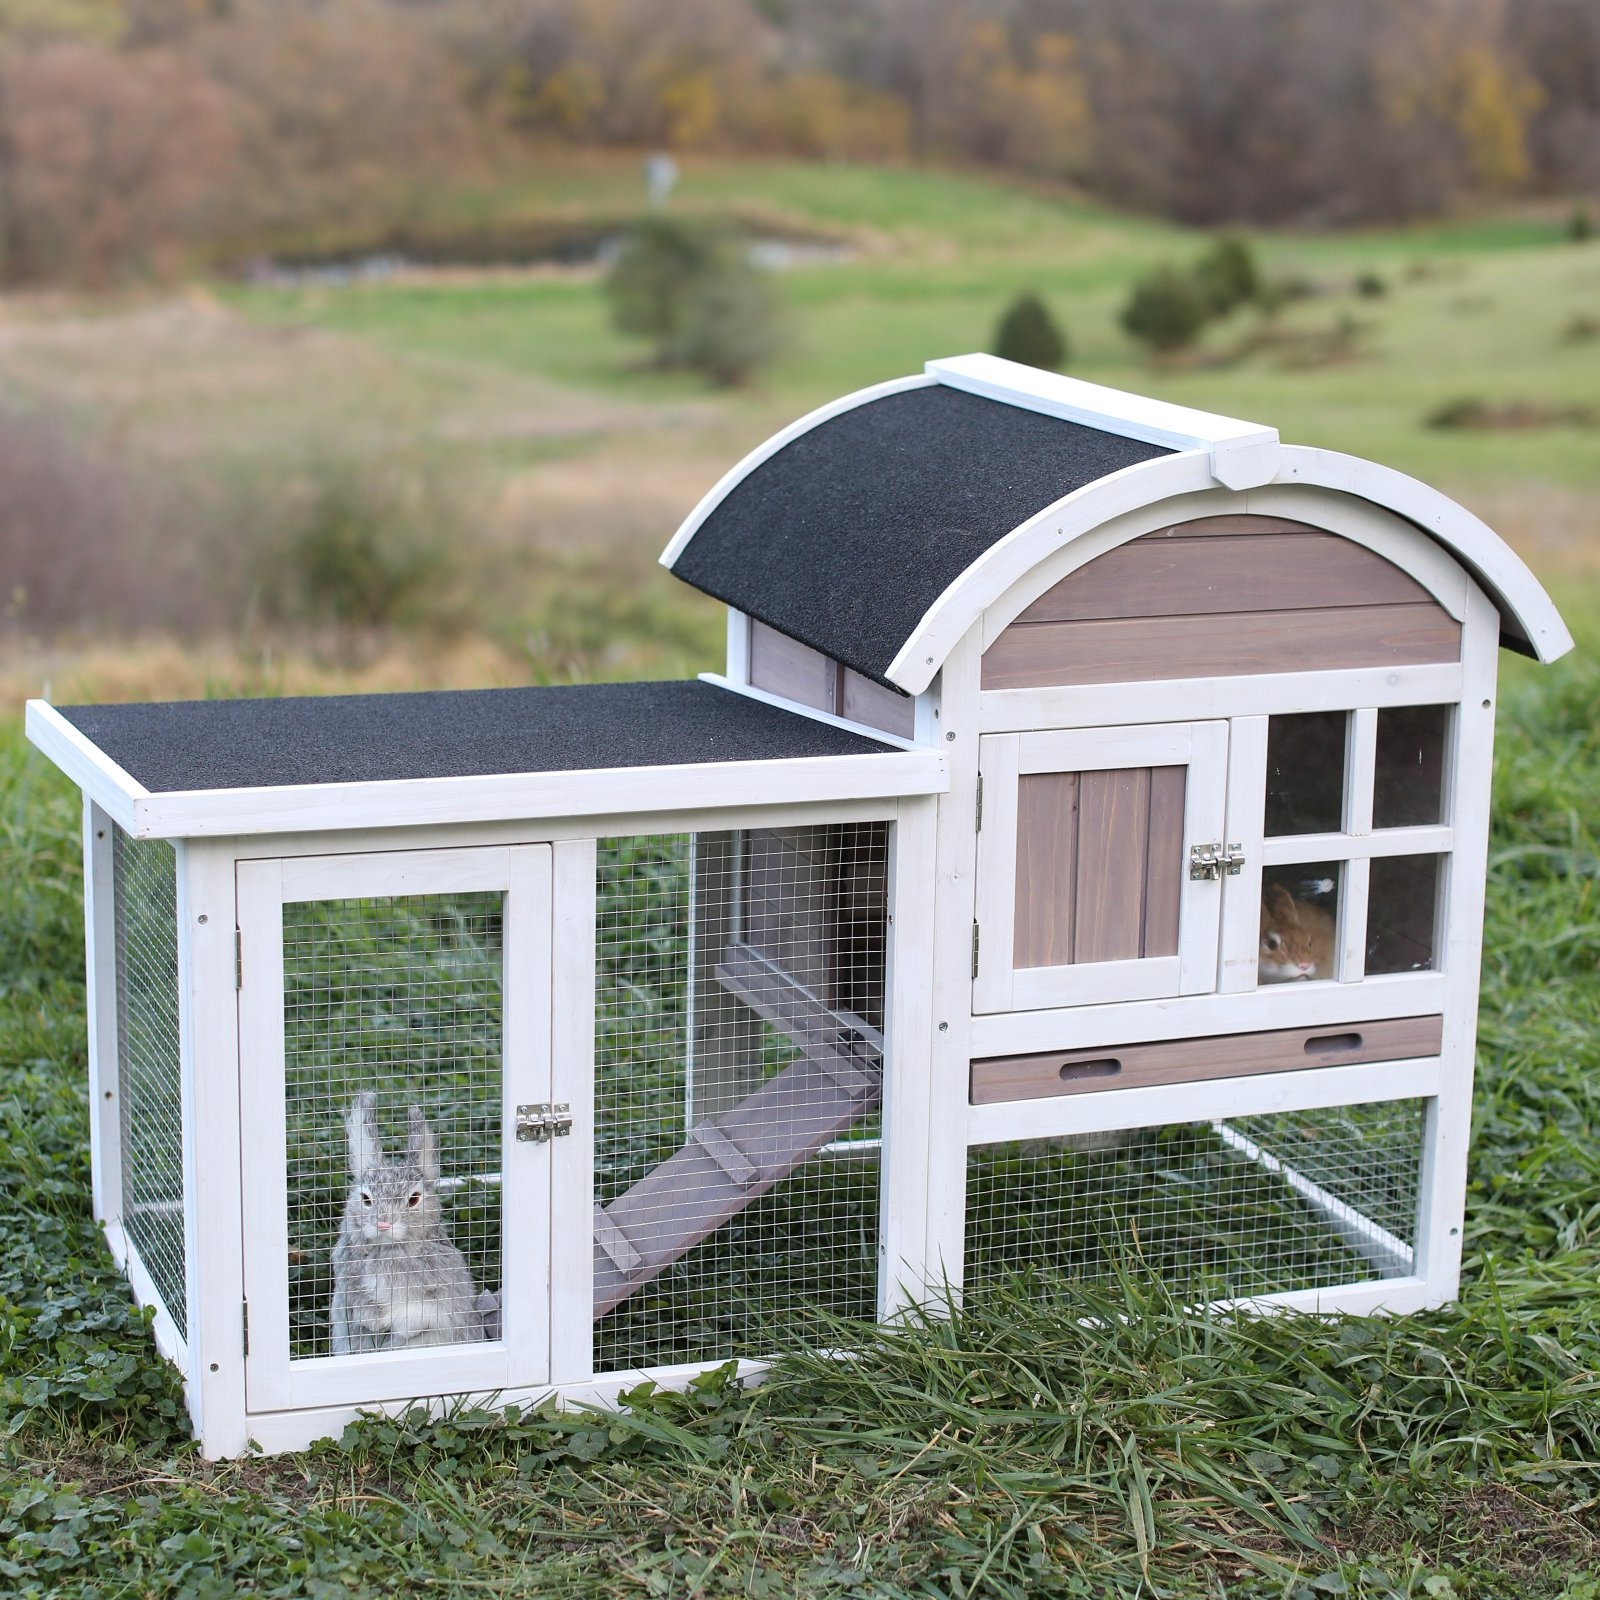 Boomer & George Rabbit Hutch with Rounded Roof and Run